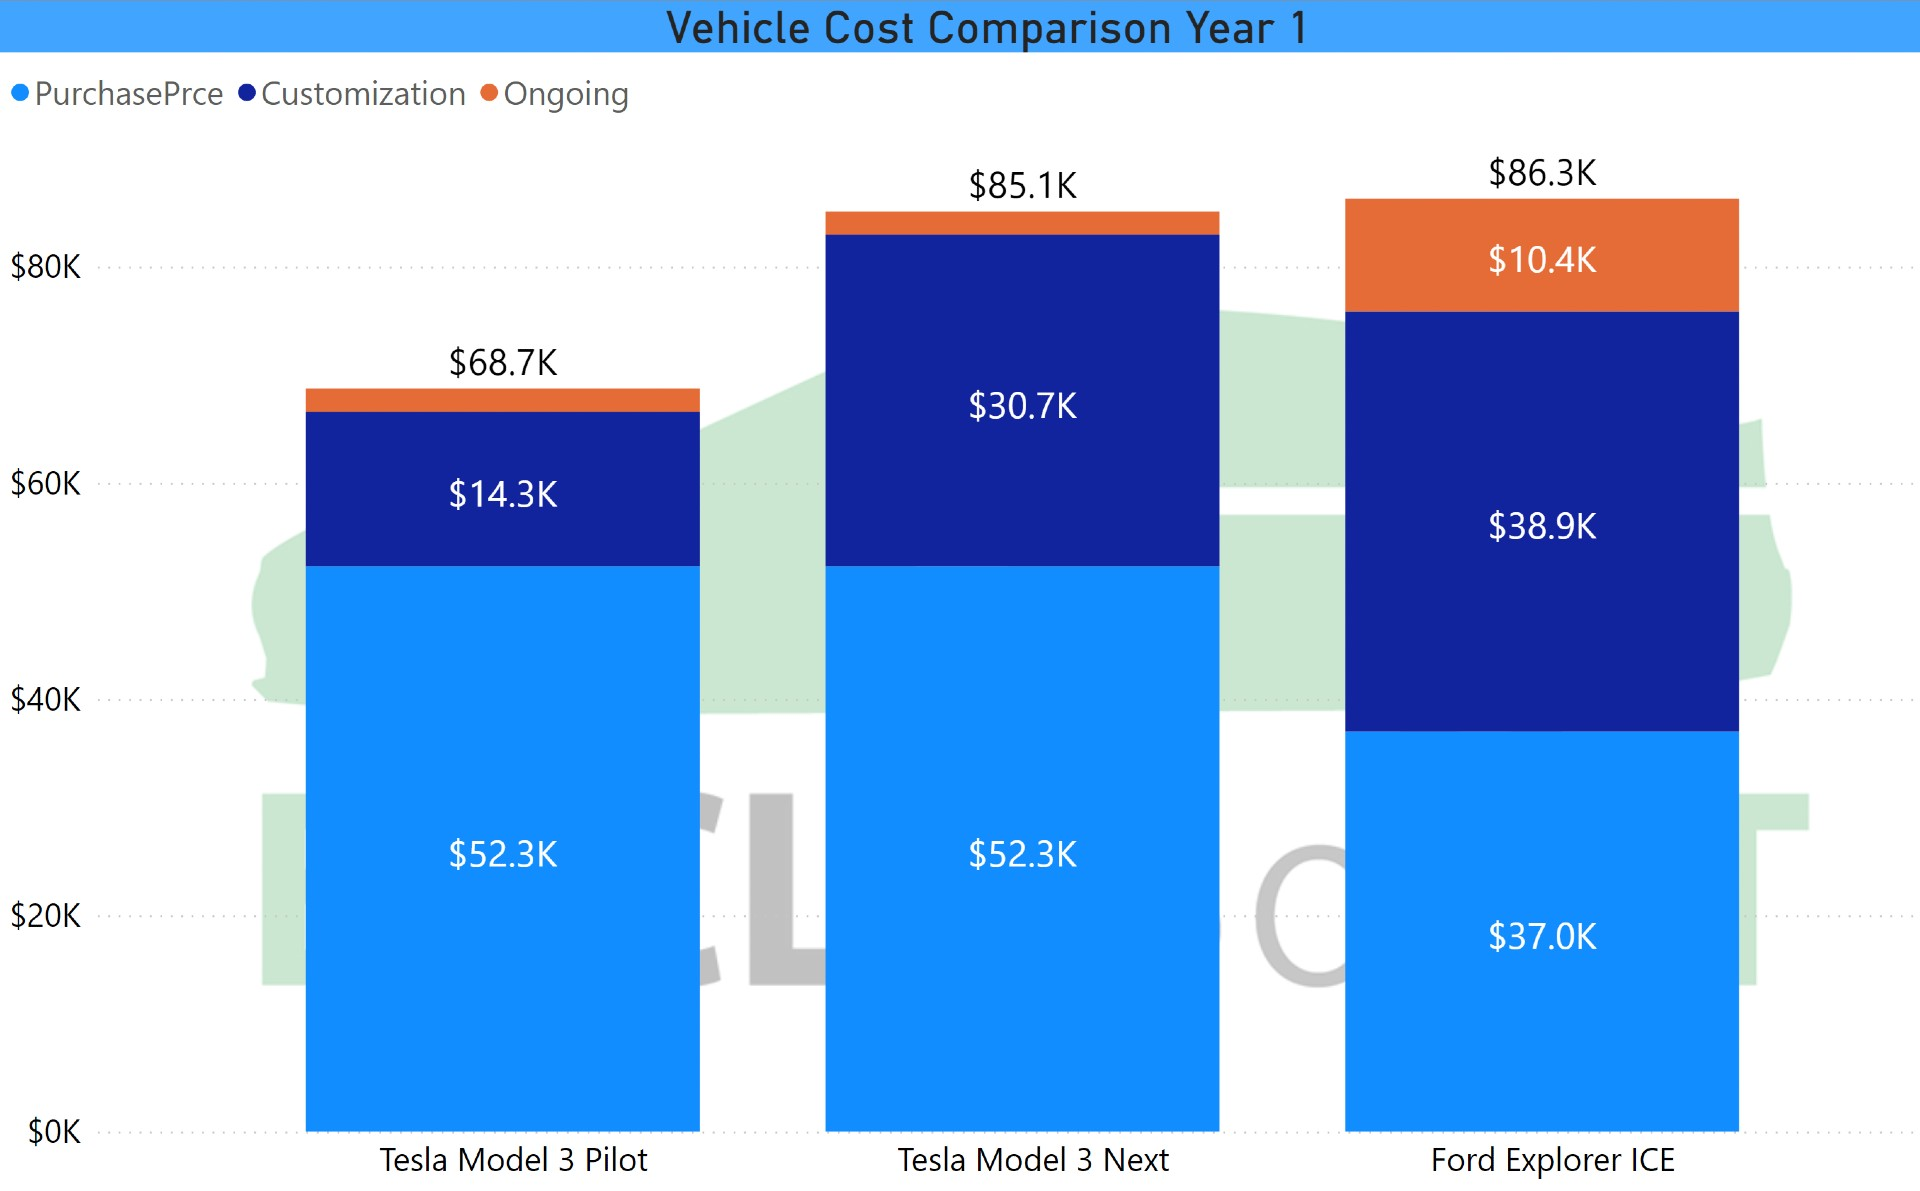 V2-of-Vehicle-Cost-Comparison-Year-1